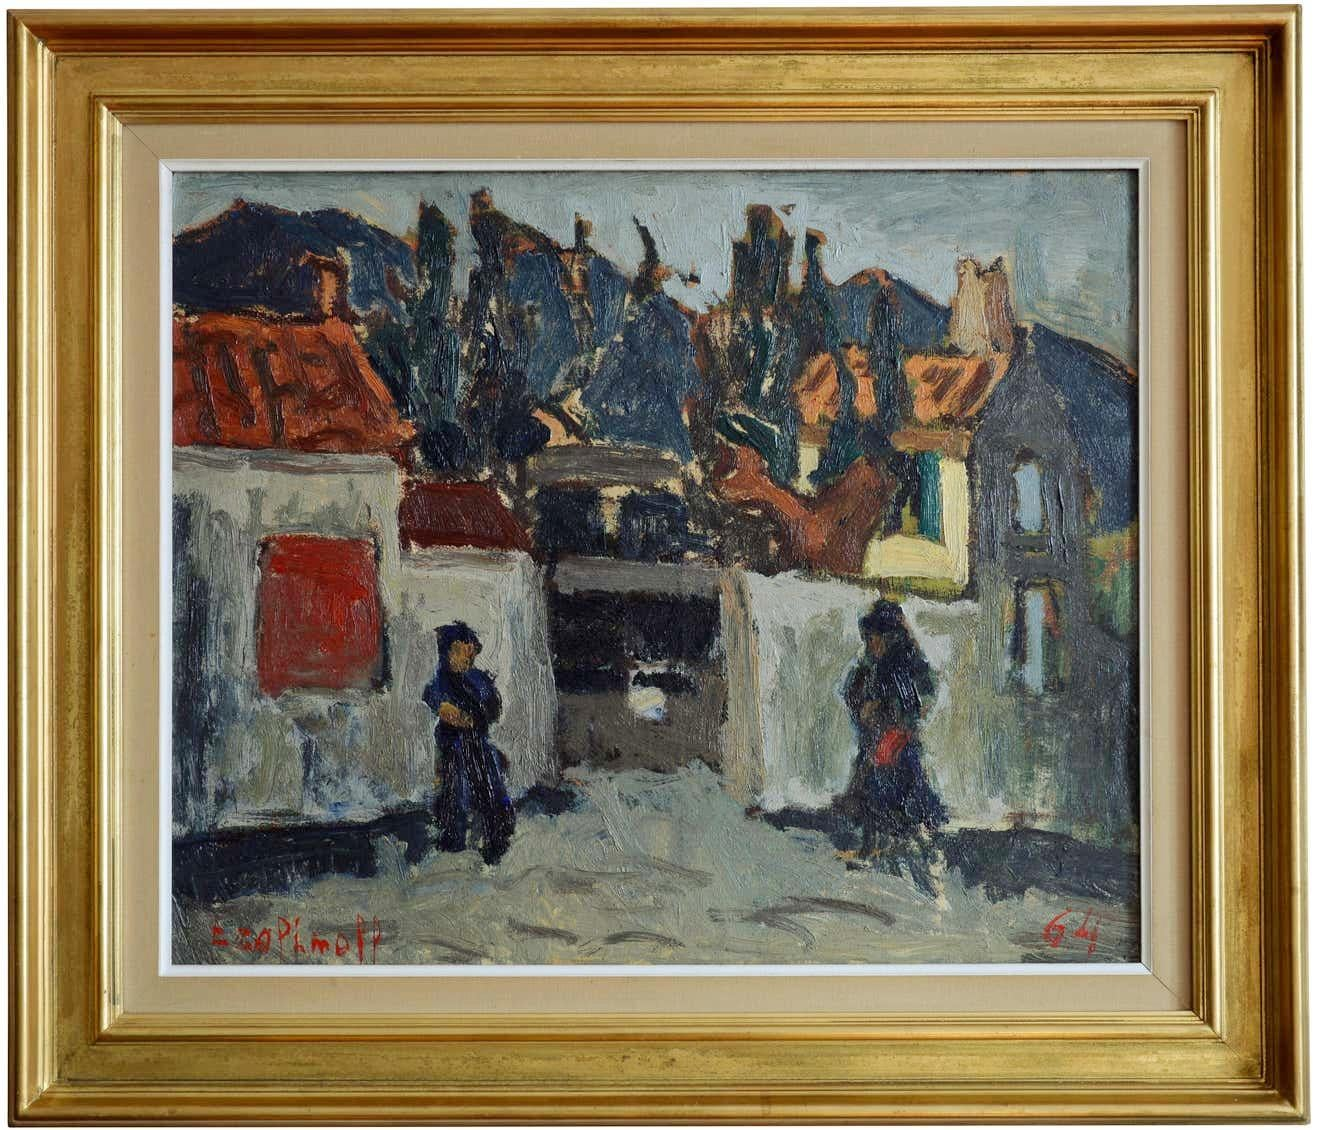 The House Of Mme Pomet, Oil on Canvas